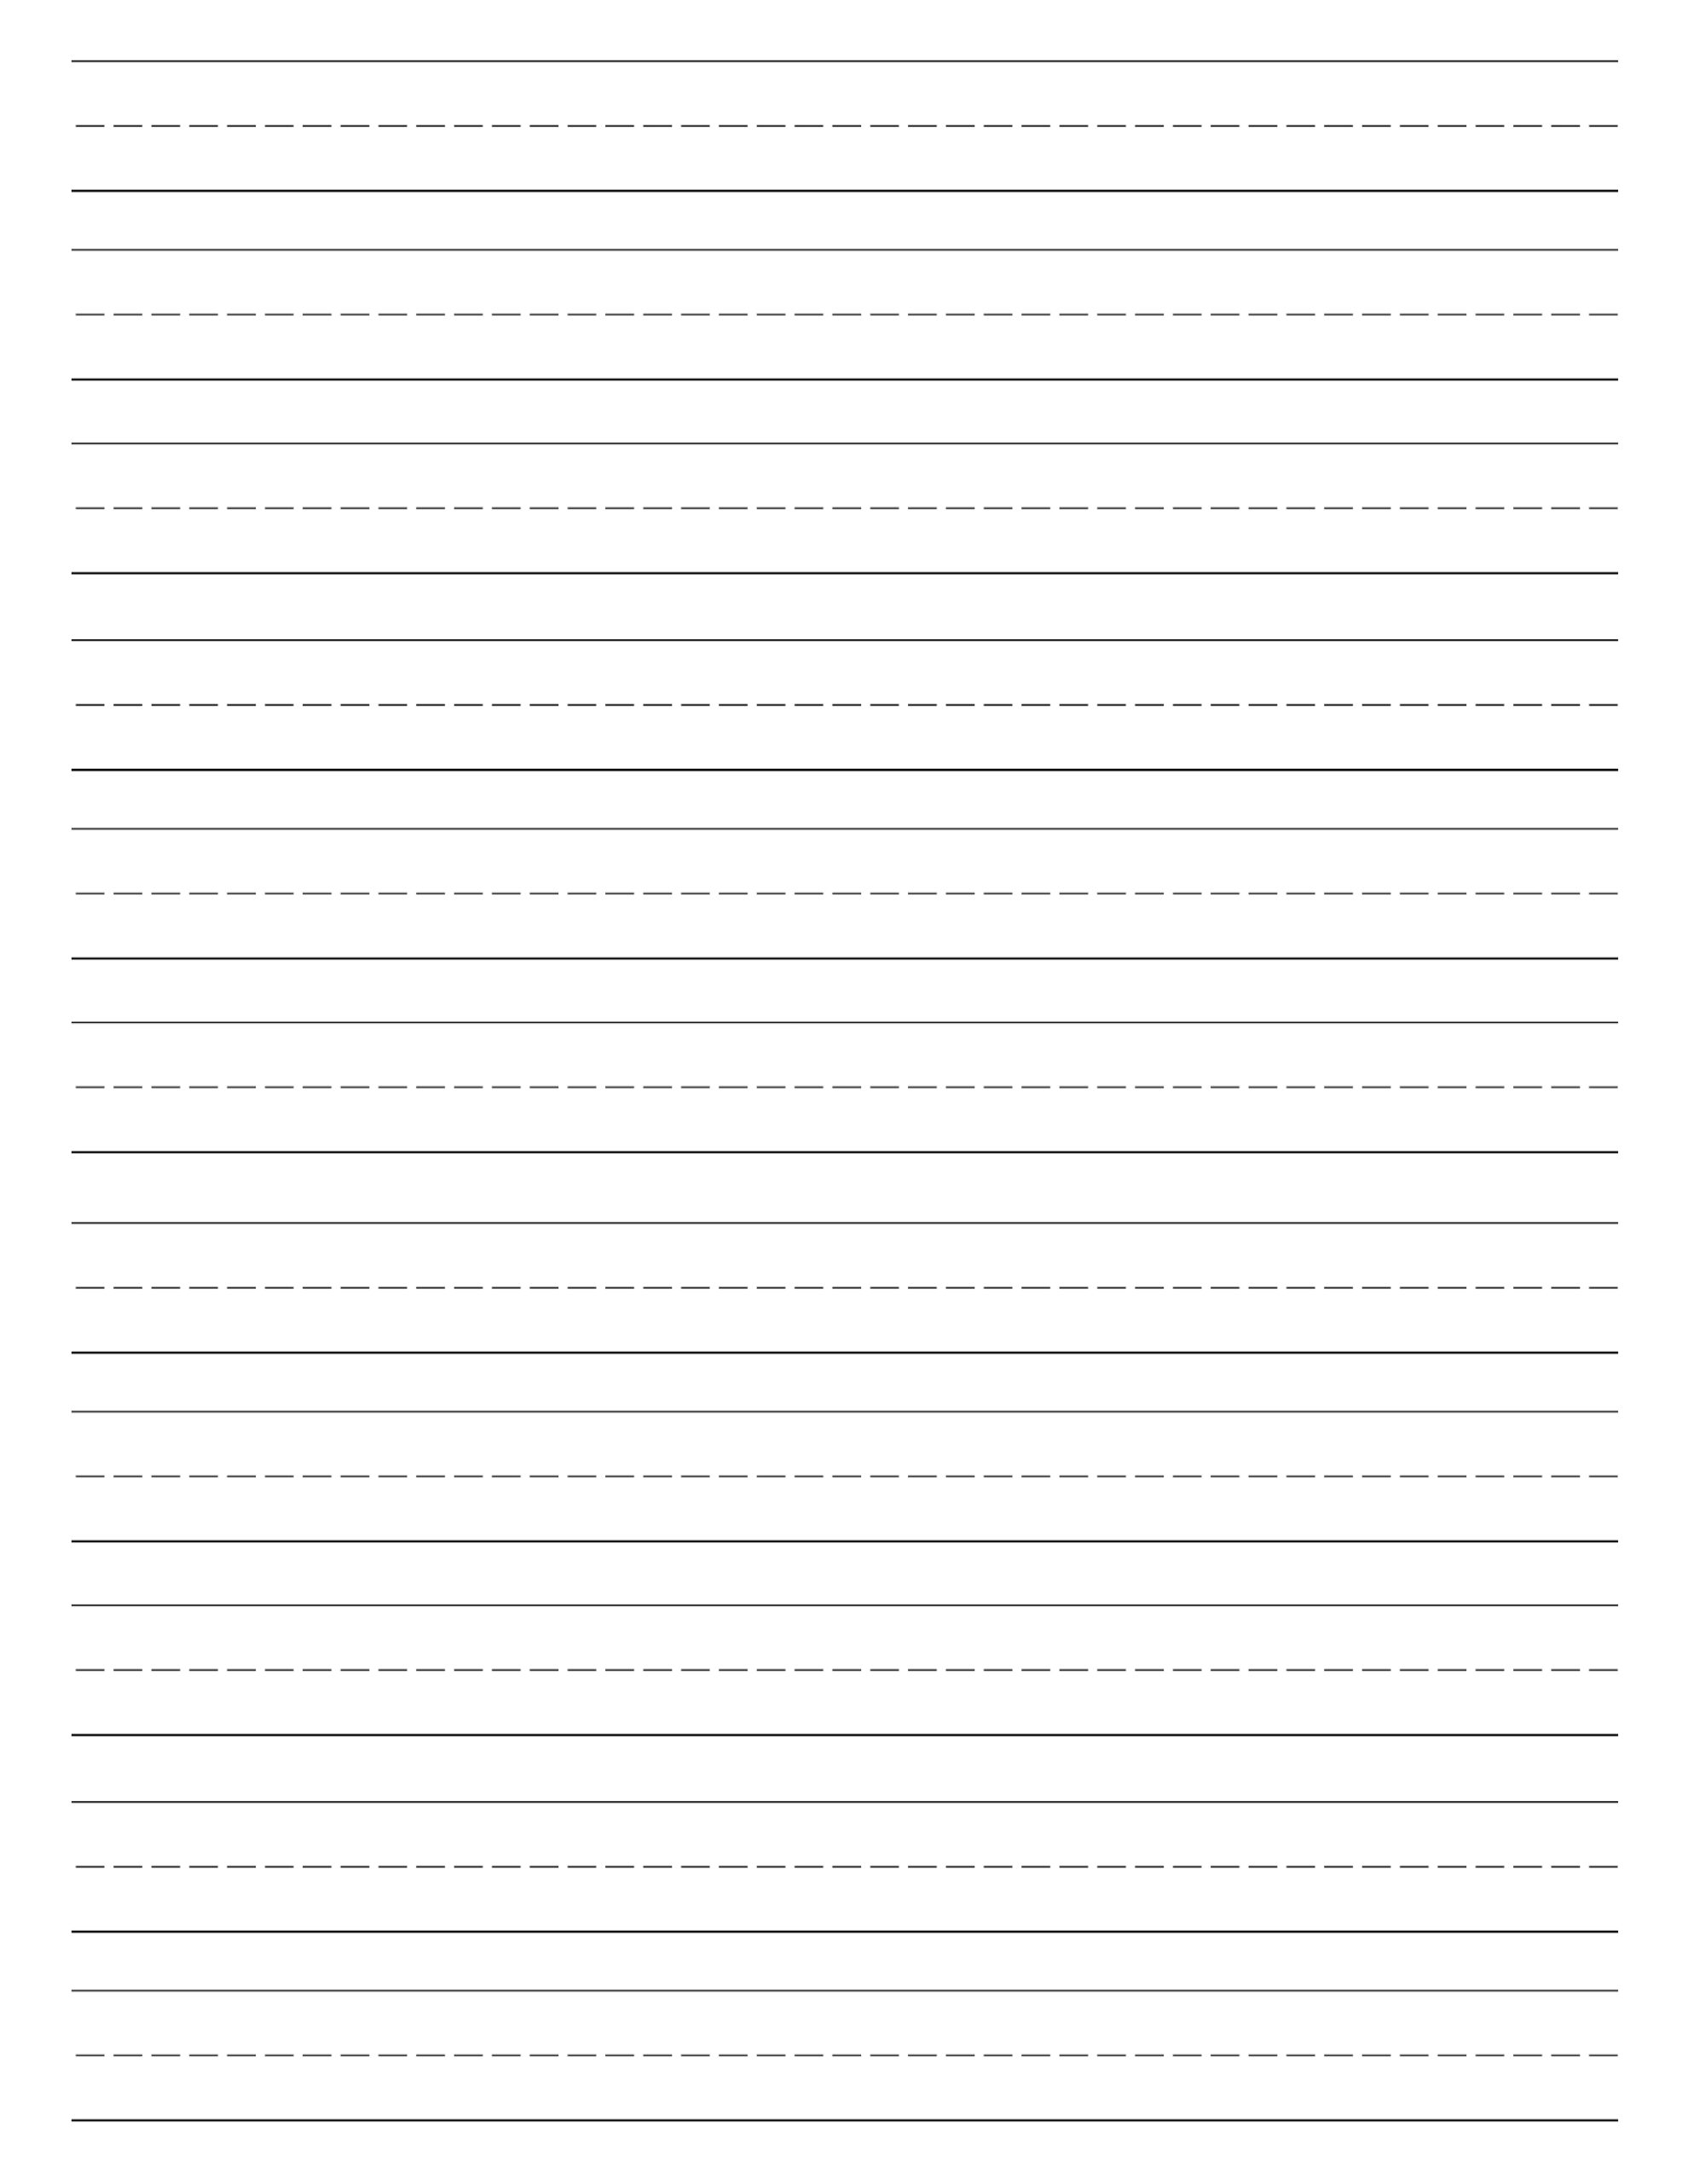 printable lined paper handwriting paper template paper  click the following links to print the printable lined paper handwriting paper template